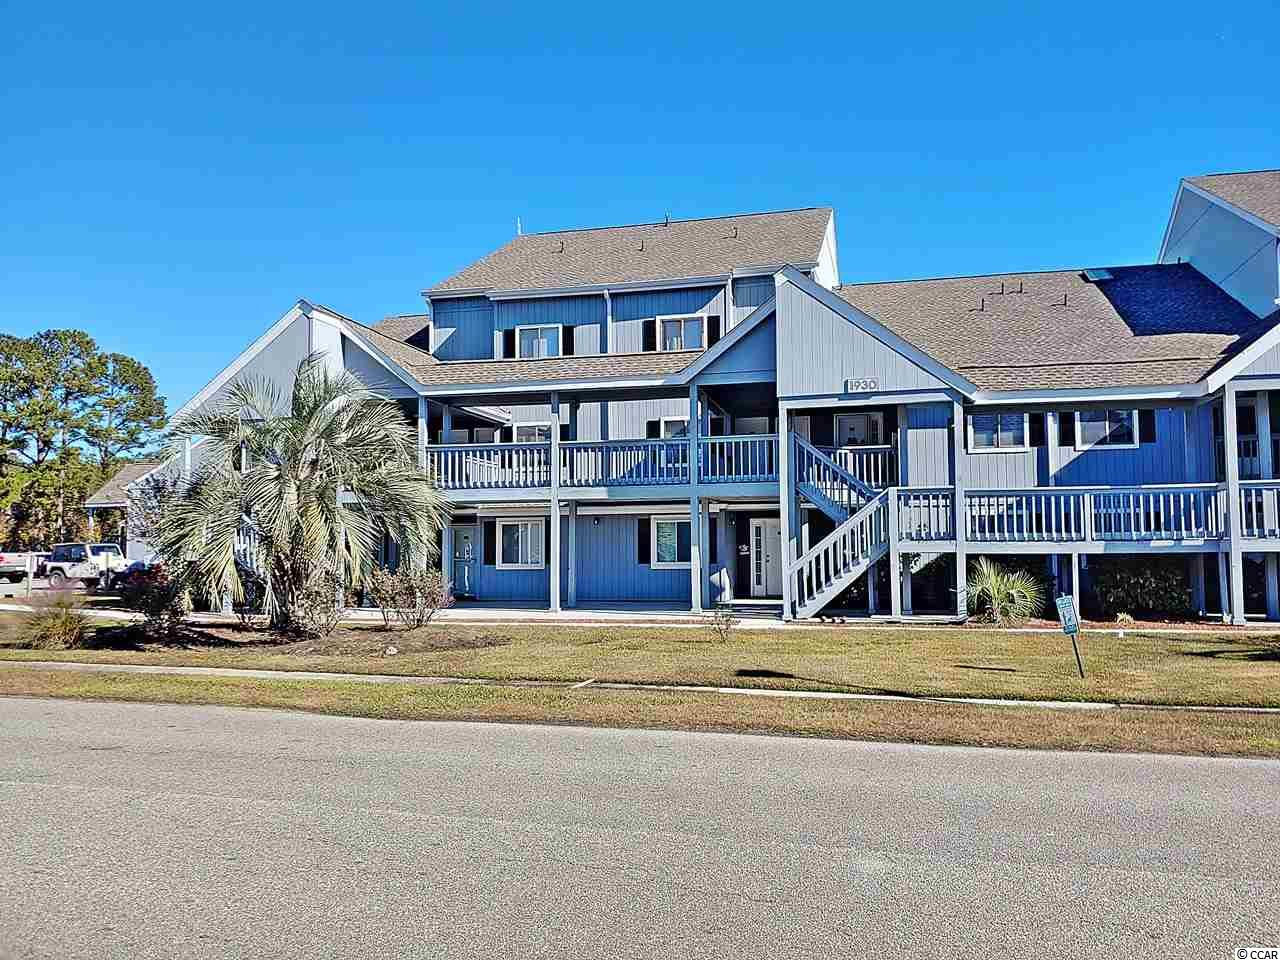 """This large 2br/2bth townhouse style designed condo with a beautiful """"beachy"""" flavor . The huge kitchen has newer frig, stove and a very large breakfast bar. You will see the pretty beach style flooring when you enter the condo. The 1st floor bedroom has 2 """"new"""" queen size mattresses. The lofted 2nd bedroom  can accommodate 2 queen beds also. The vaulted ceilings and (new)  skylights create the wide open floor plan. A 9' sliding glass door opens to a  sunny deck overlooking  the pretty pool and lounging  area.  Great gathering place , meet your neighbors. The courtyard also has grilling area for cooking out. There are 2 nice tennis courts for your enjoyment. Golf Colony has year round owners, as well as 2nd home vacationers .  So convenient to airport, beach, shopping and our Seafood Capitol  of SC Murrells Inlet fishing village.  Must see ."""